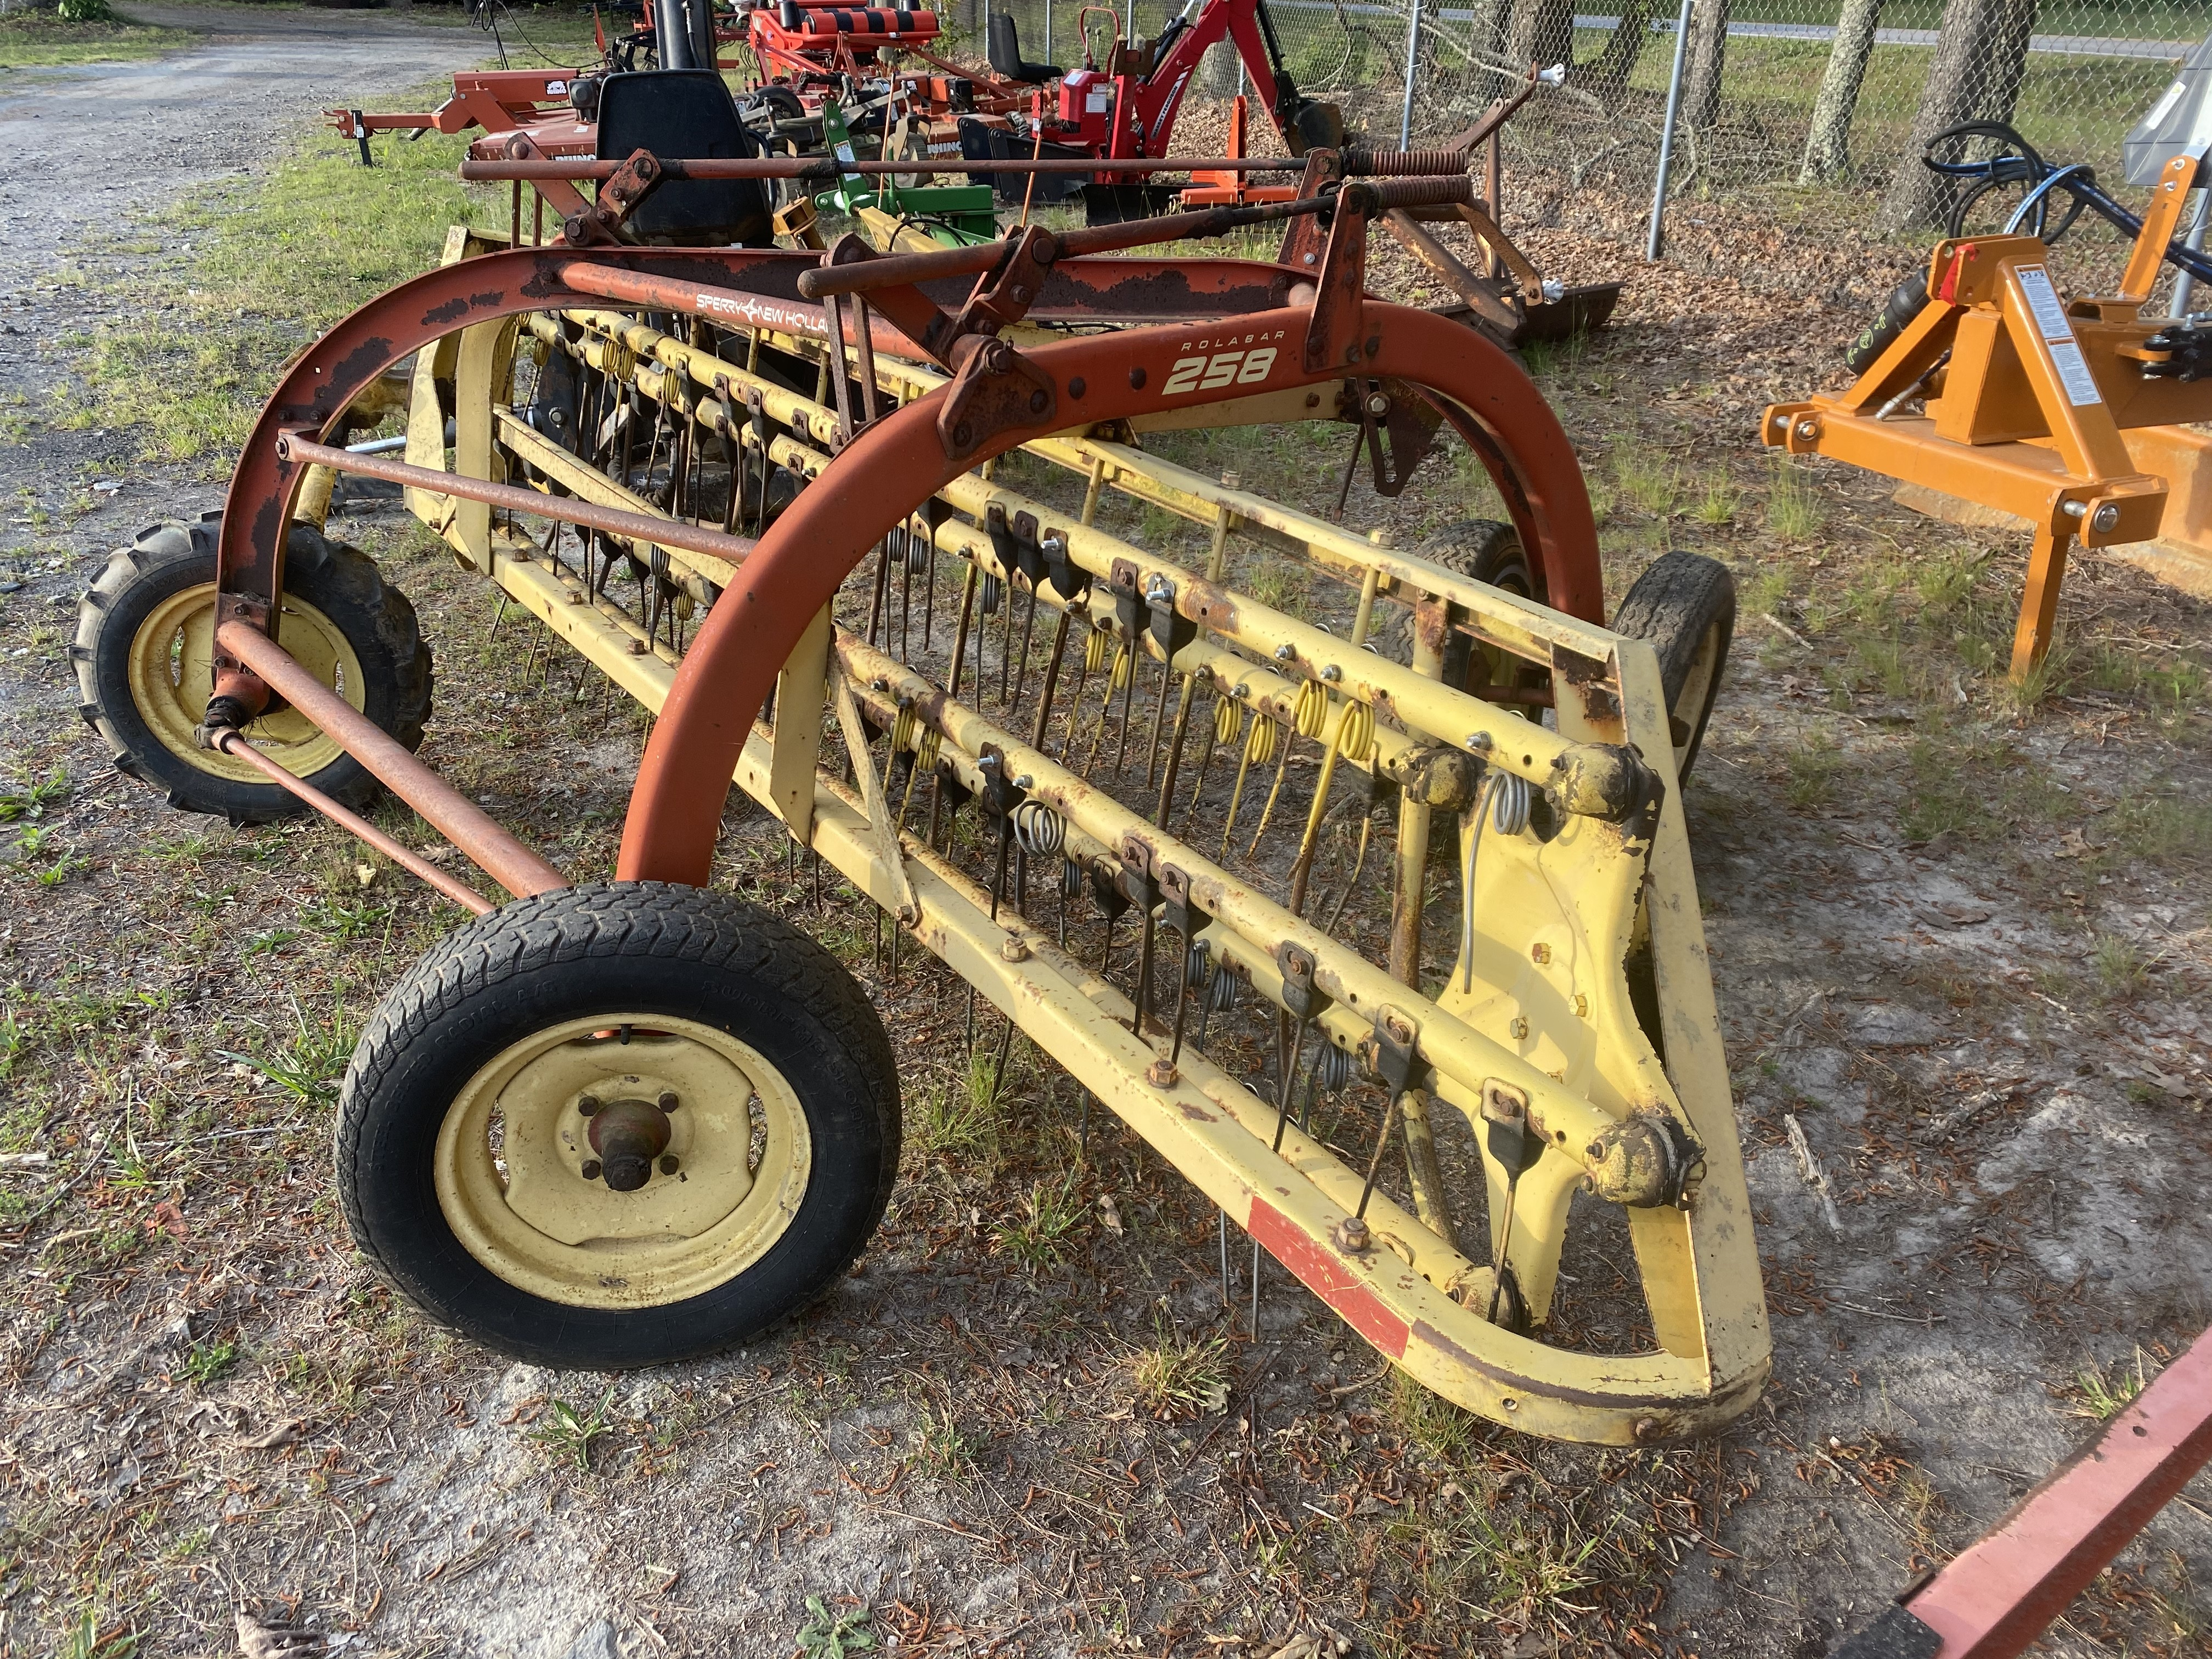 Used, 2021, New Holland Agriculture, 258 (Rolabar® Rakes), Lawn Mowers